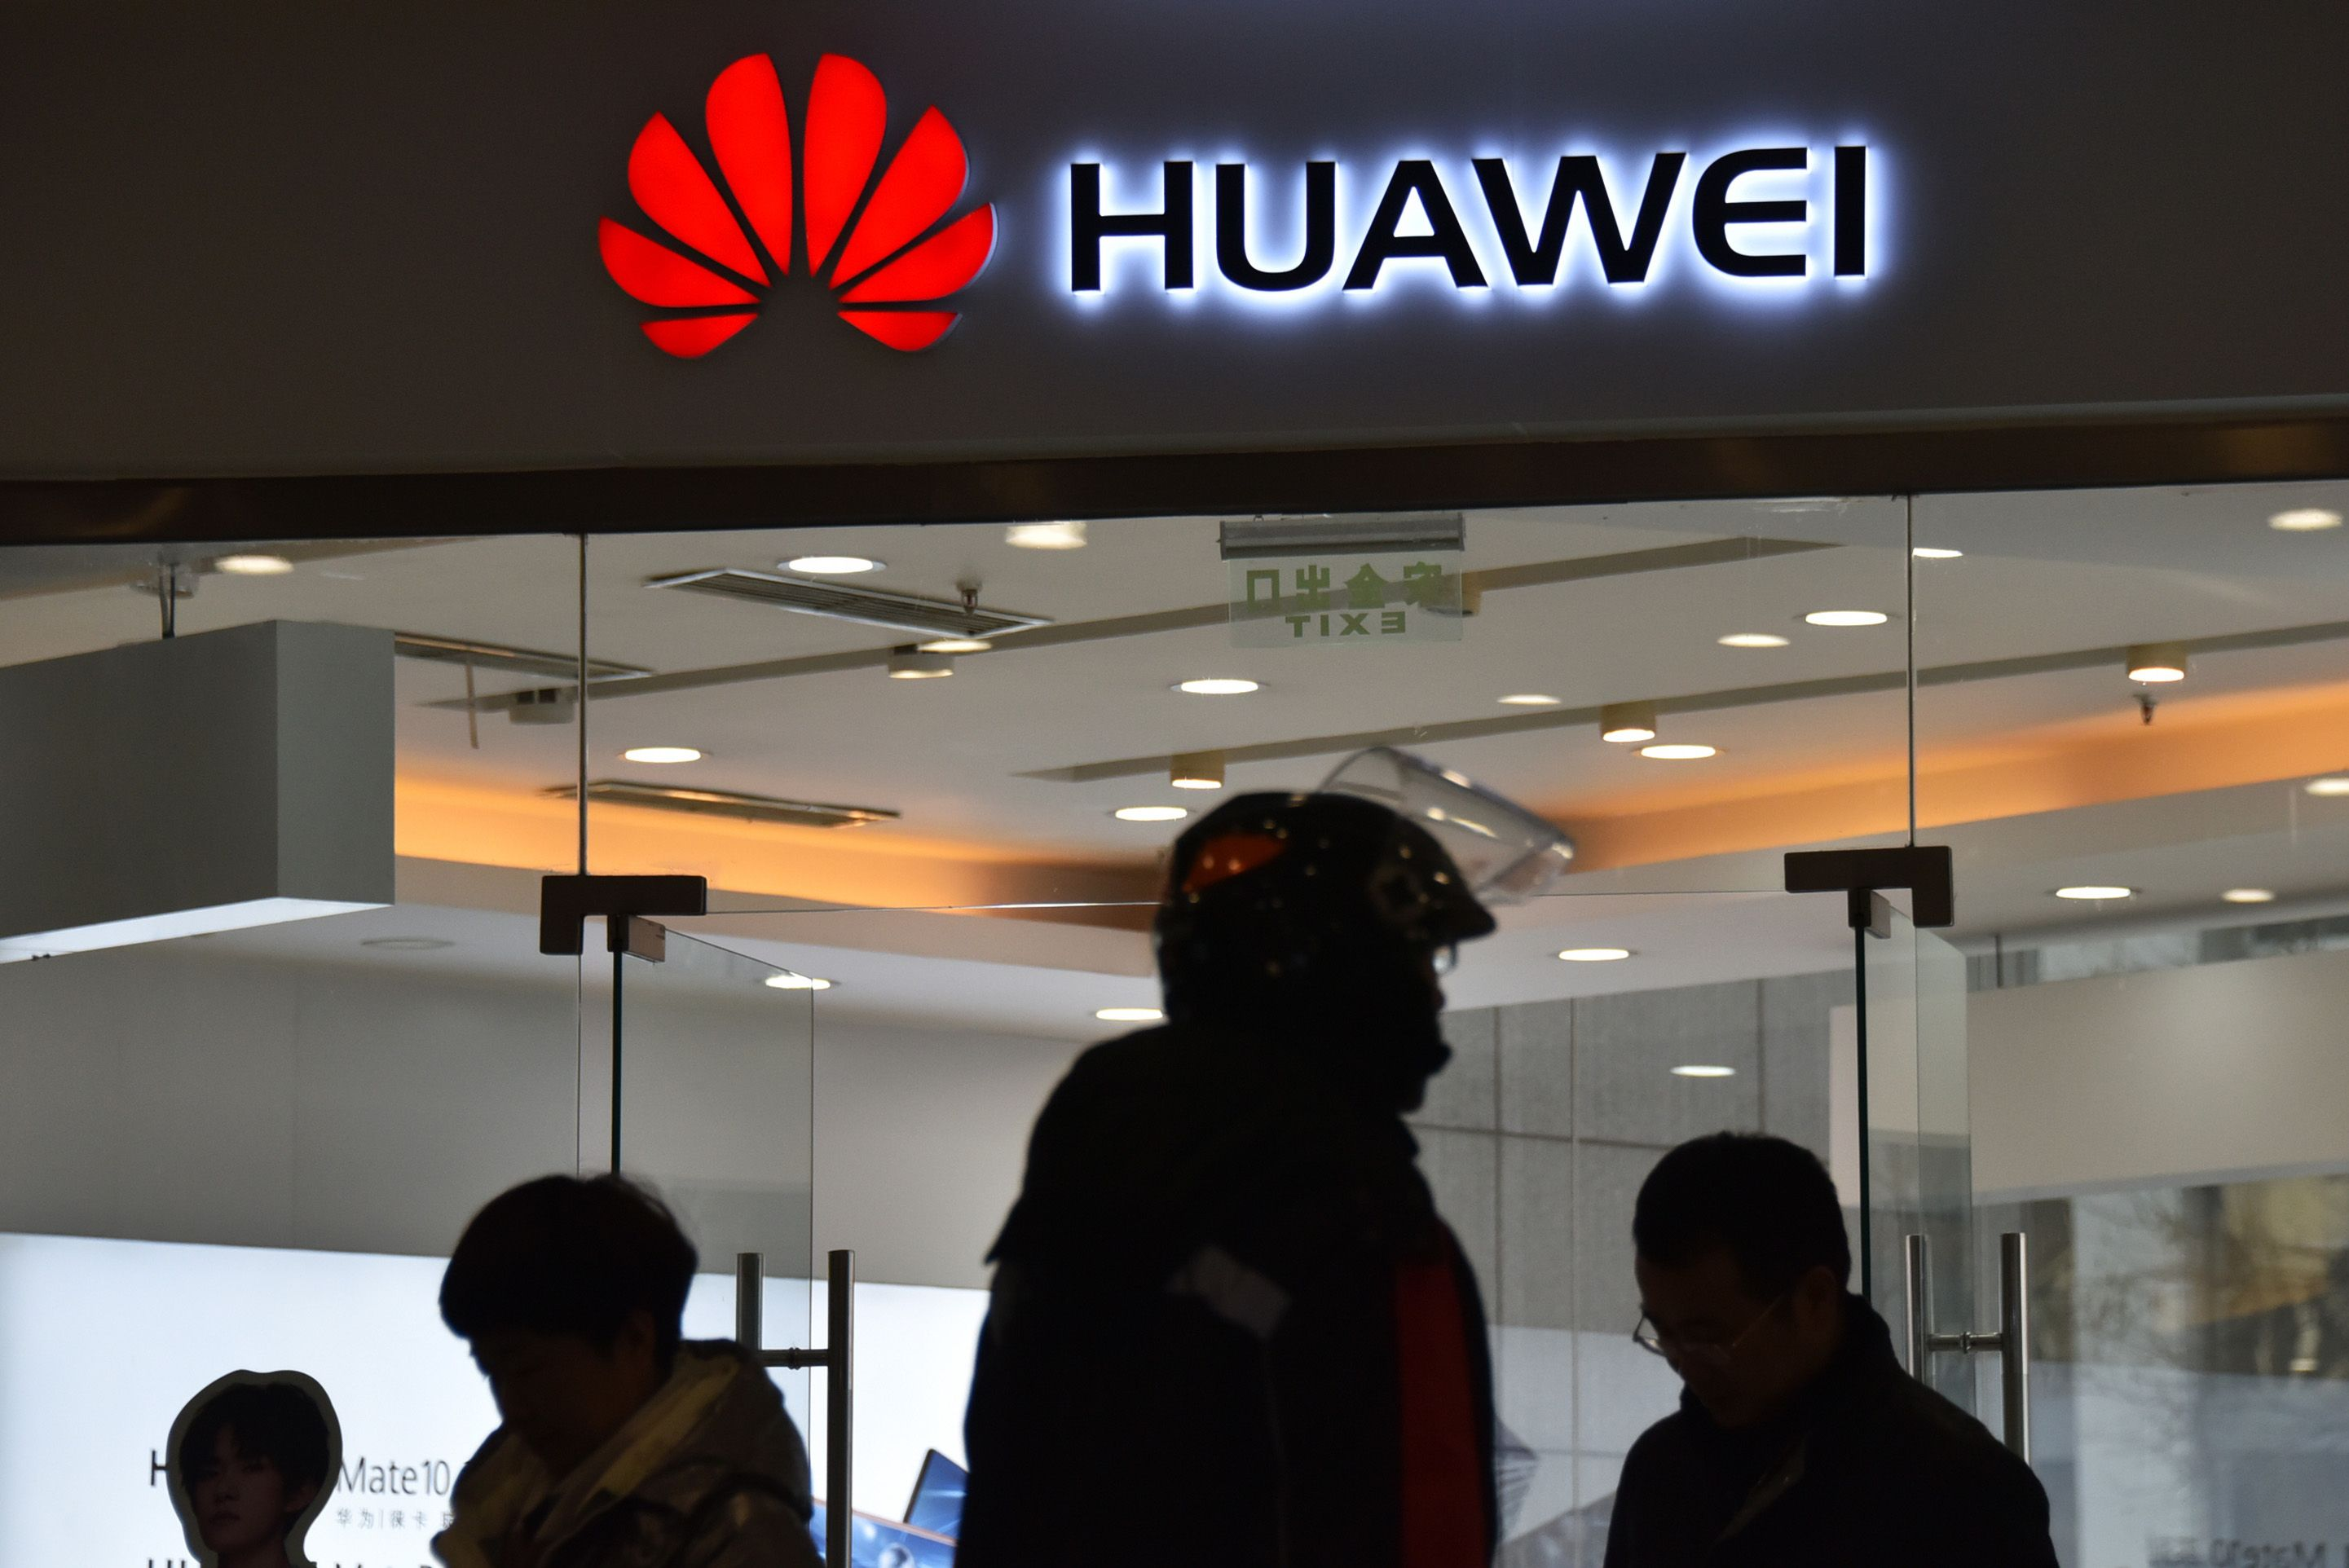 Huawei may face 5G ban in Canada, security experts say | The